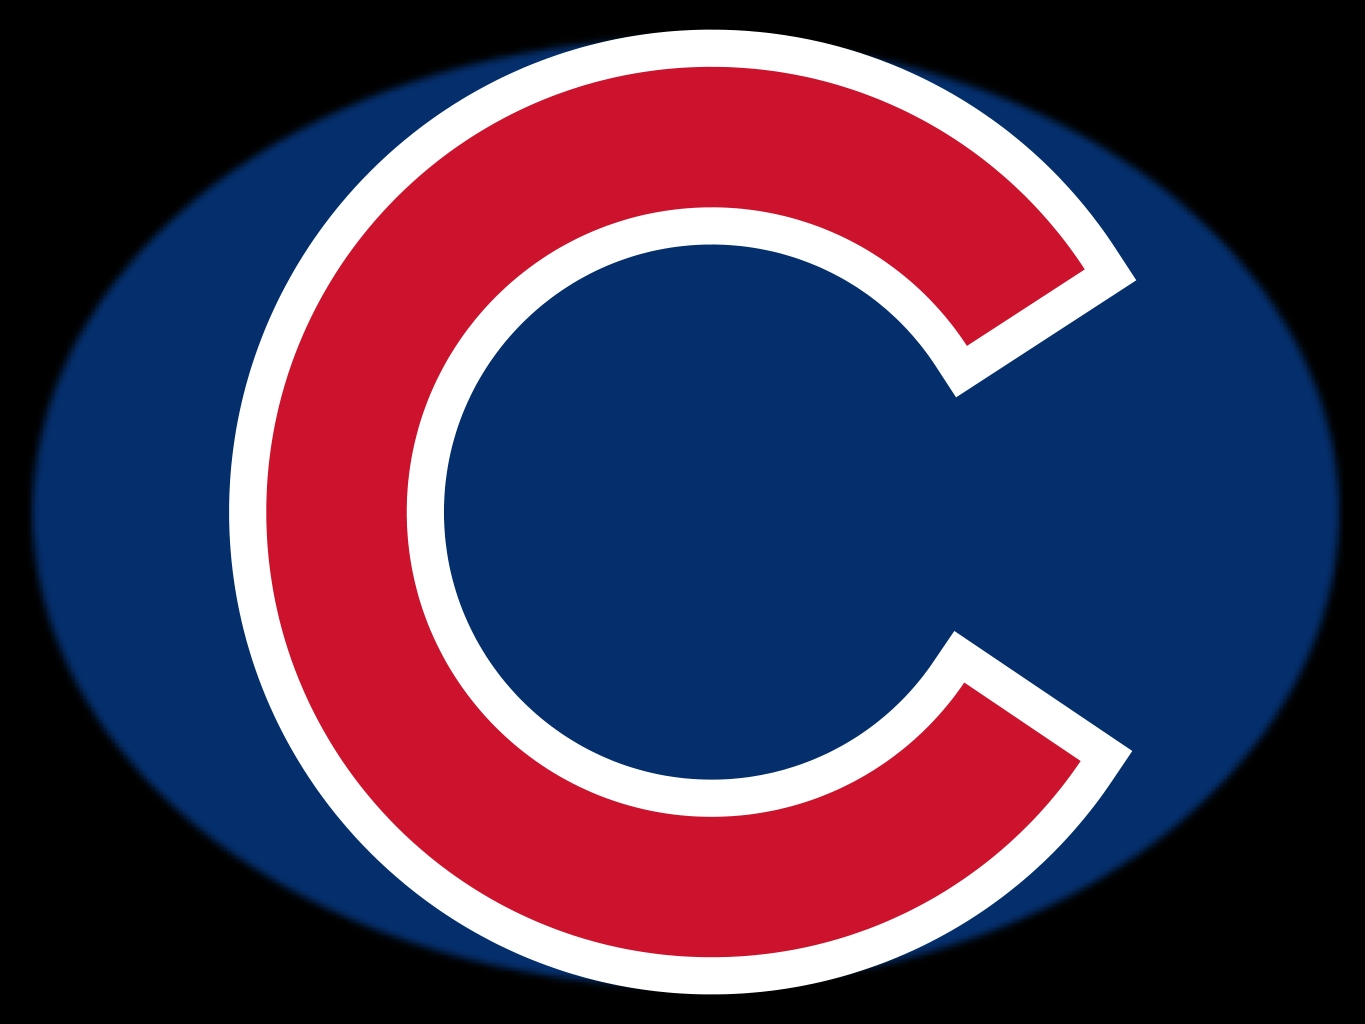 Free cubs clipart image freeuse download Free Cubs Cliparts, Download Free Clip Art, Free Clip Art on Clipart ... image freeuse download